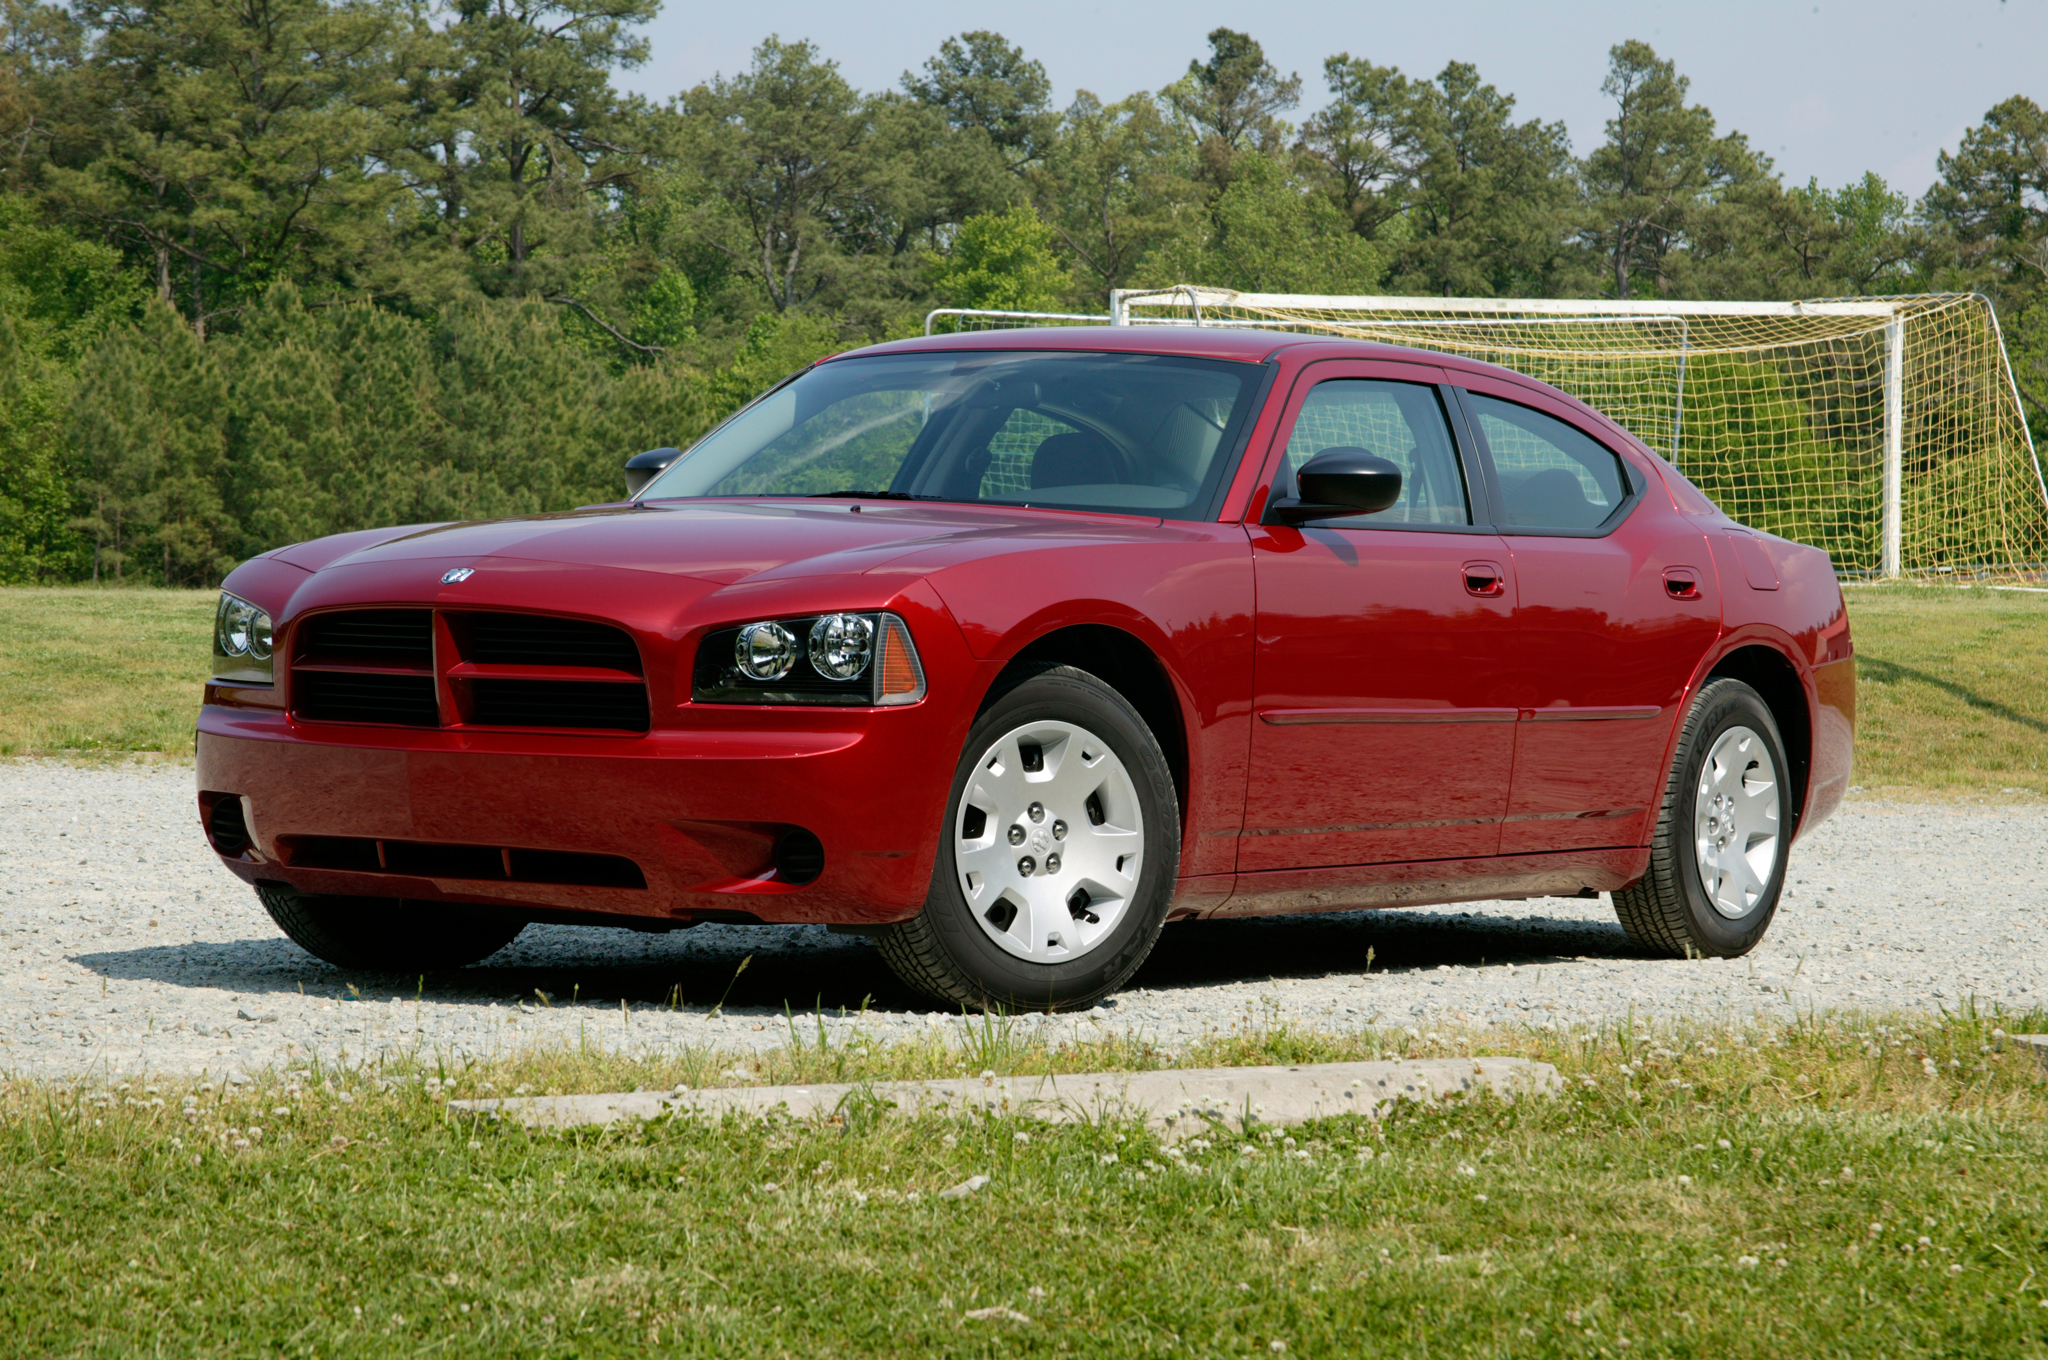 2006 Dodge Charger front three quarter